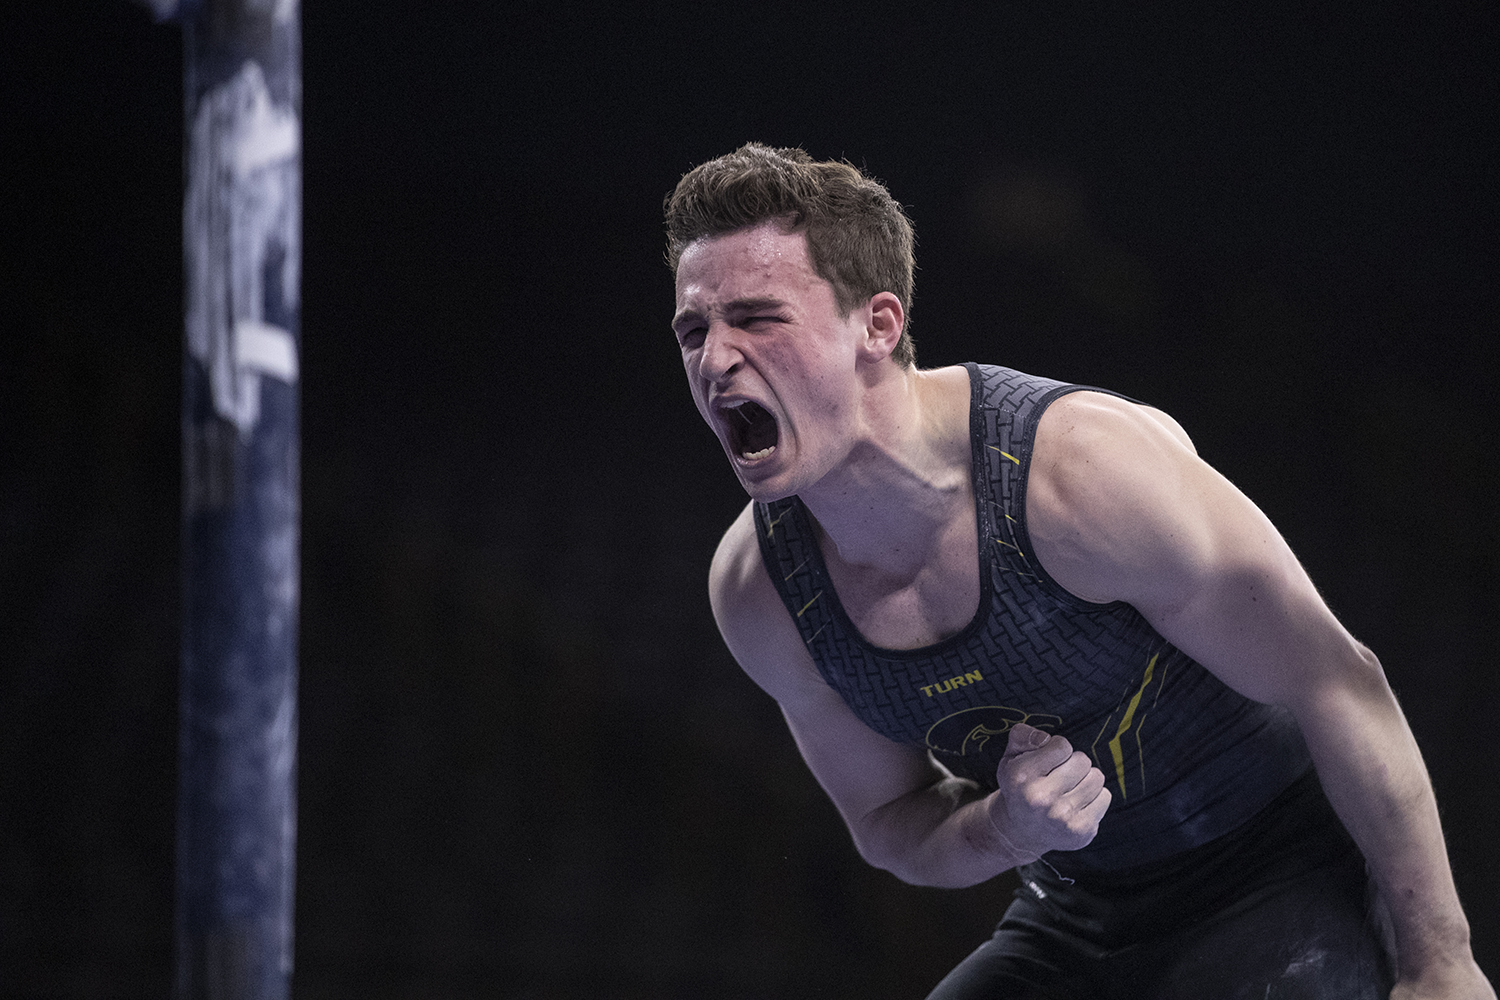 Hawkeye gymnast Jake Brodarzon celebrates after competing in the parallel bars Friday in Carver Hawkeye Arena during the Men's Big Ten Championships. Penn State won the team competition with a combined score of 410.350 points.